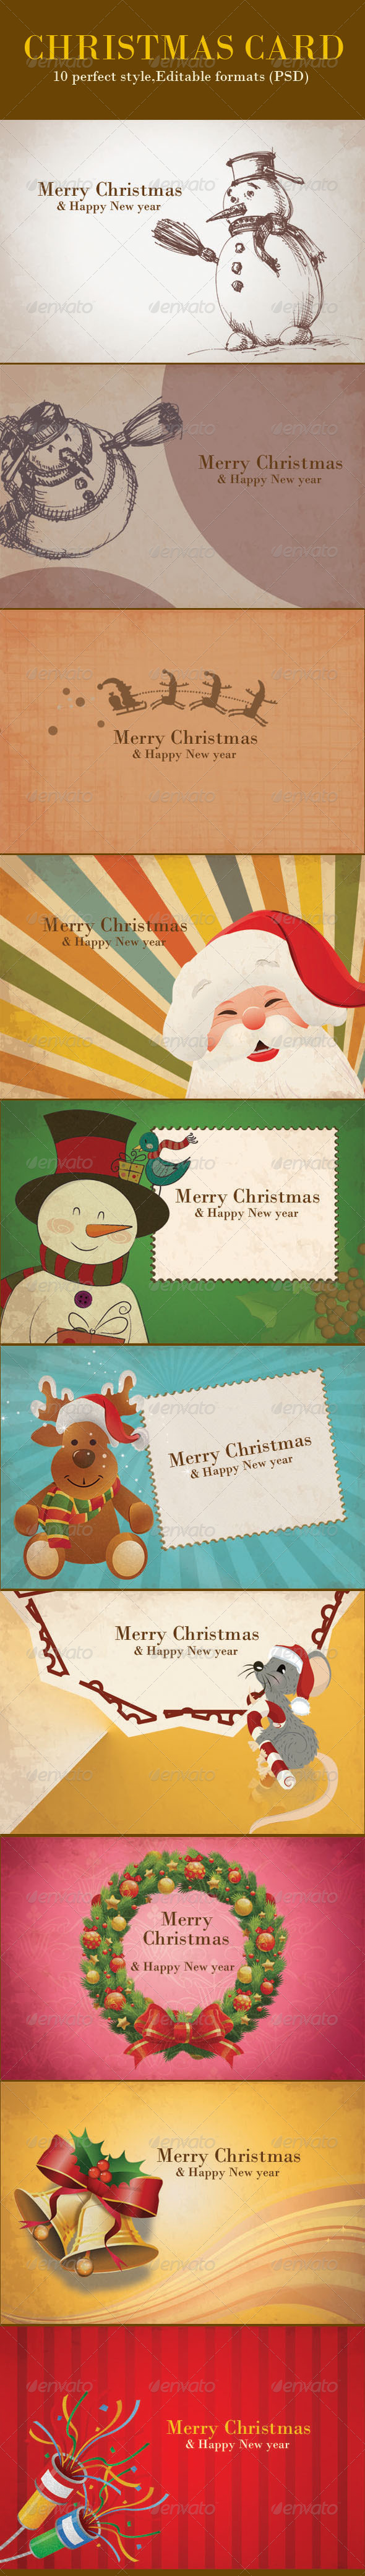 Vintage Christmas Backgrounds Card  - Miscellaneous Backgrounds